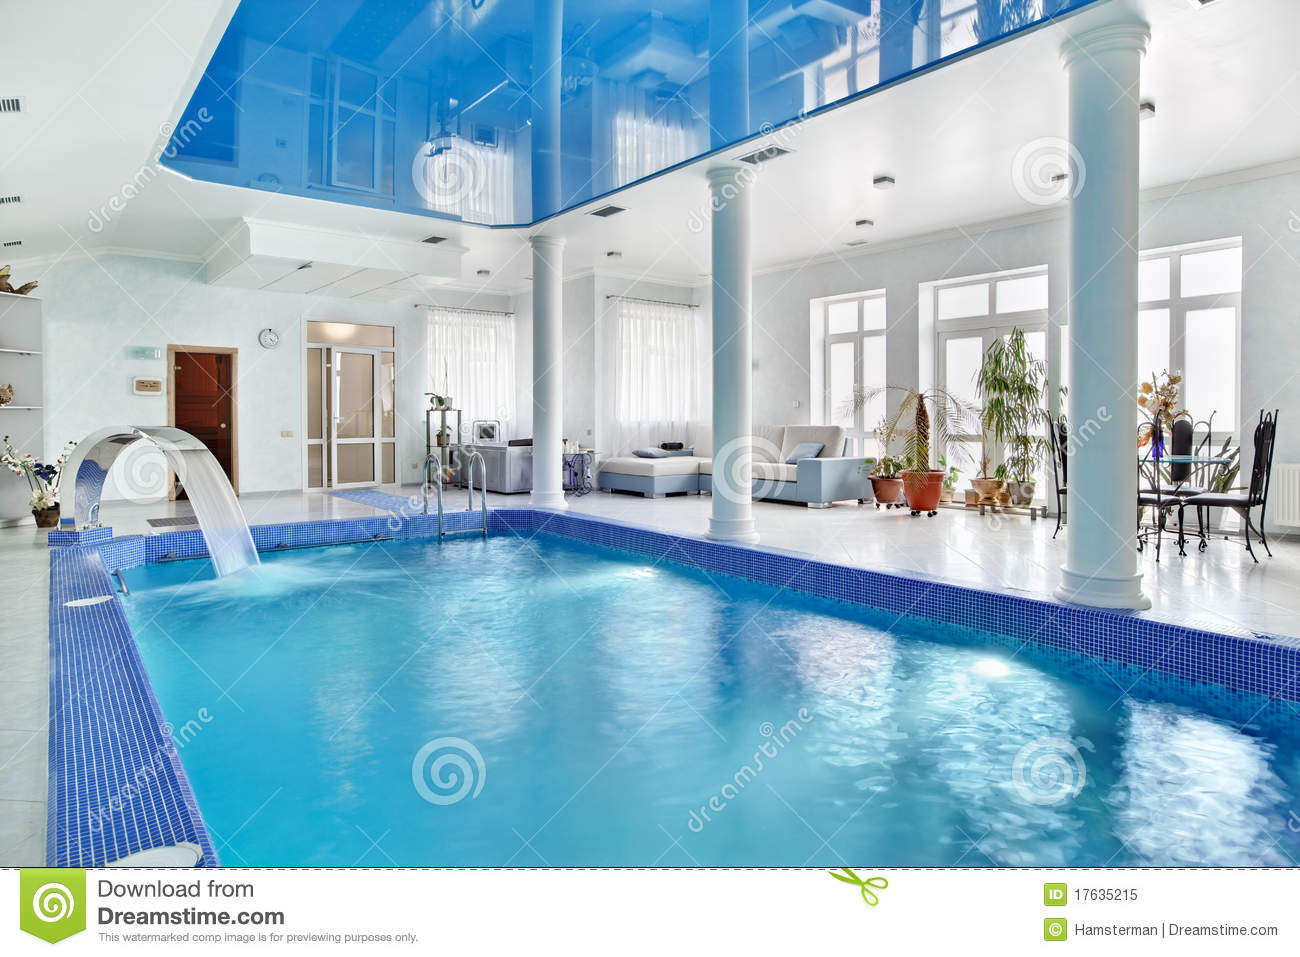 Big Houses With Pools Inside indoor big blue swimming pool interior royalty free stock photo